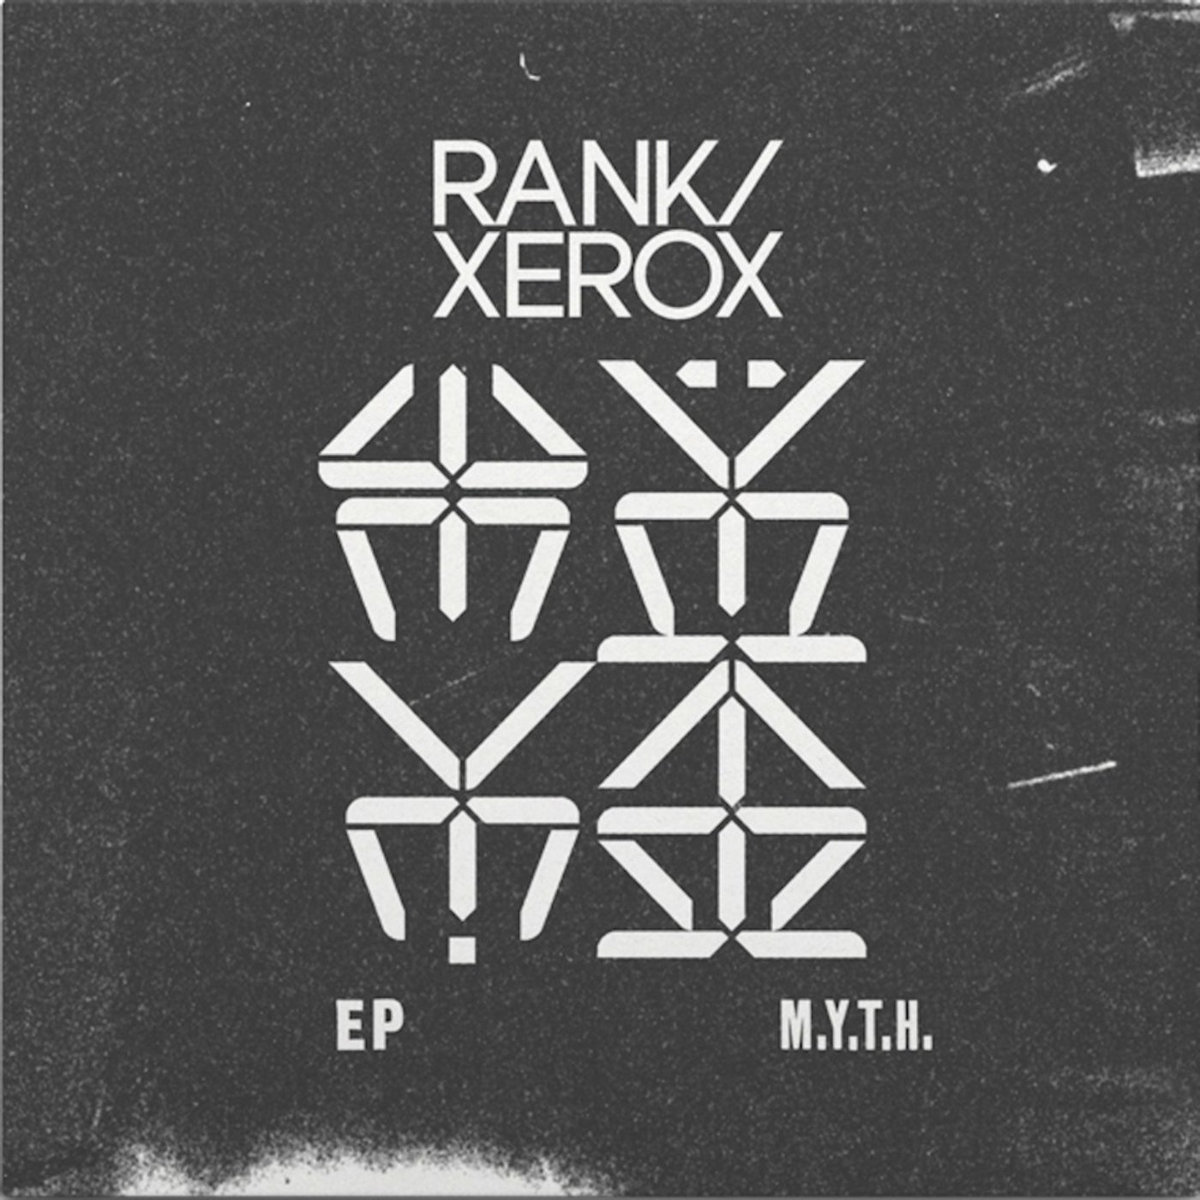 RANK / XEROX m.y.t.h. - Vinyl LP (black)